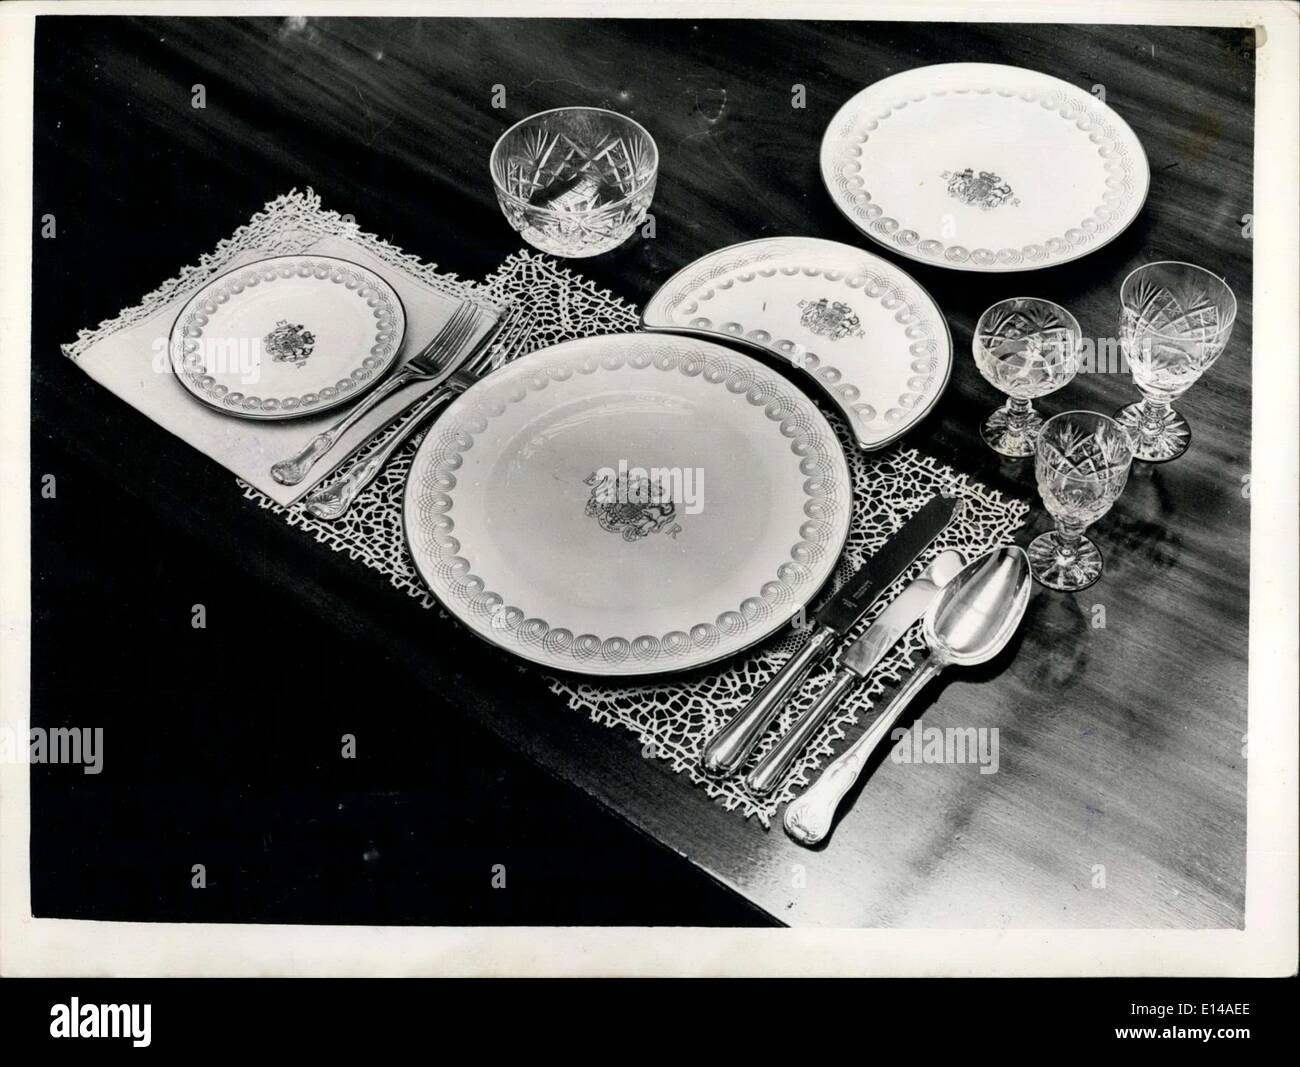 Apr. 17 2012 - Wedgwood China Service - 1.200 piece - for use at & China Wedgwood Stock Photos \u0026 China Wedgwood Stock Images - Alamy